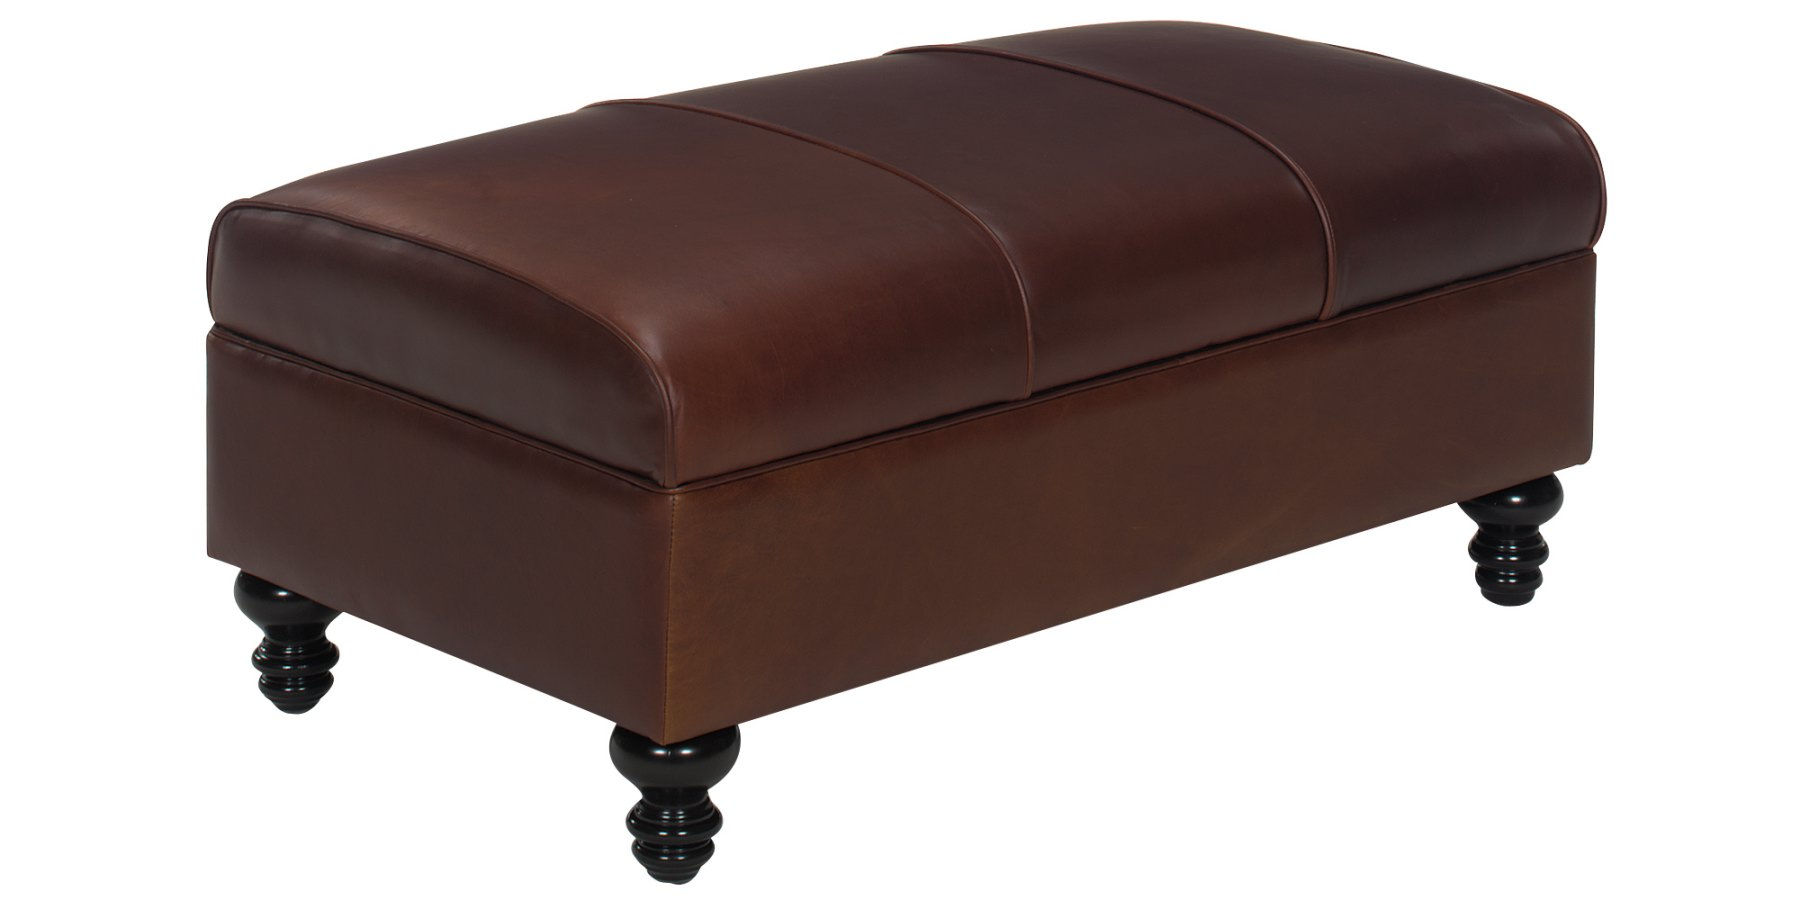 Storage Coffee Table Ottoman With Storage Club Furniture